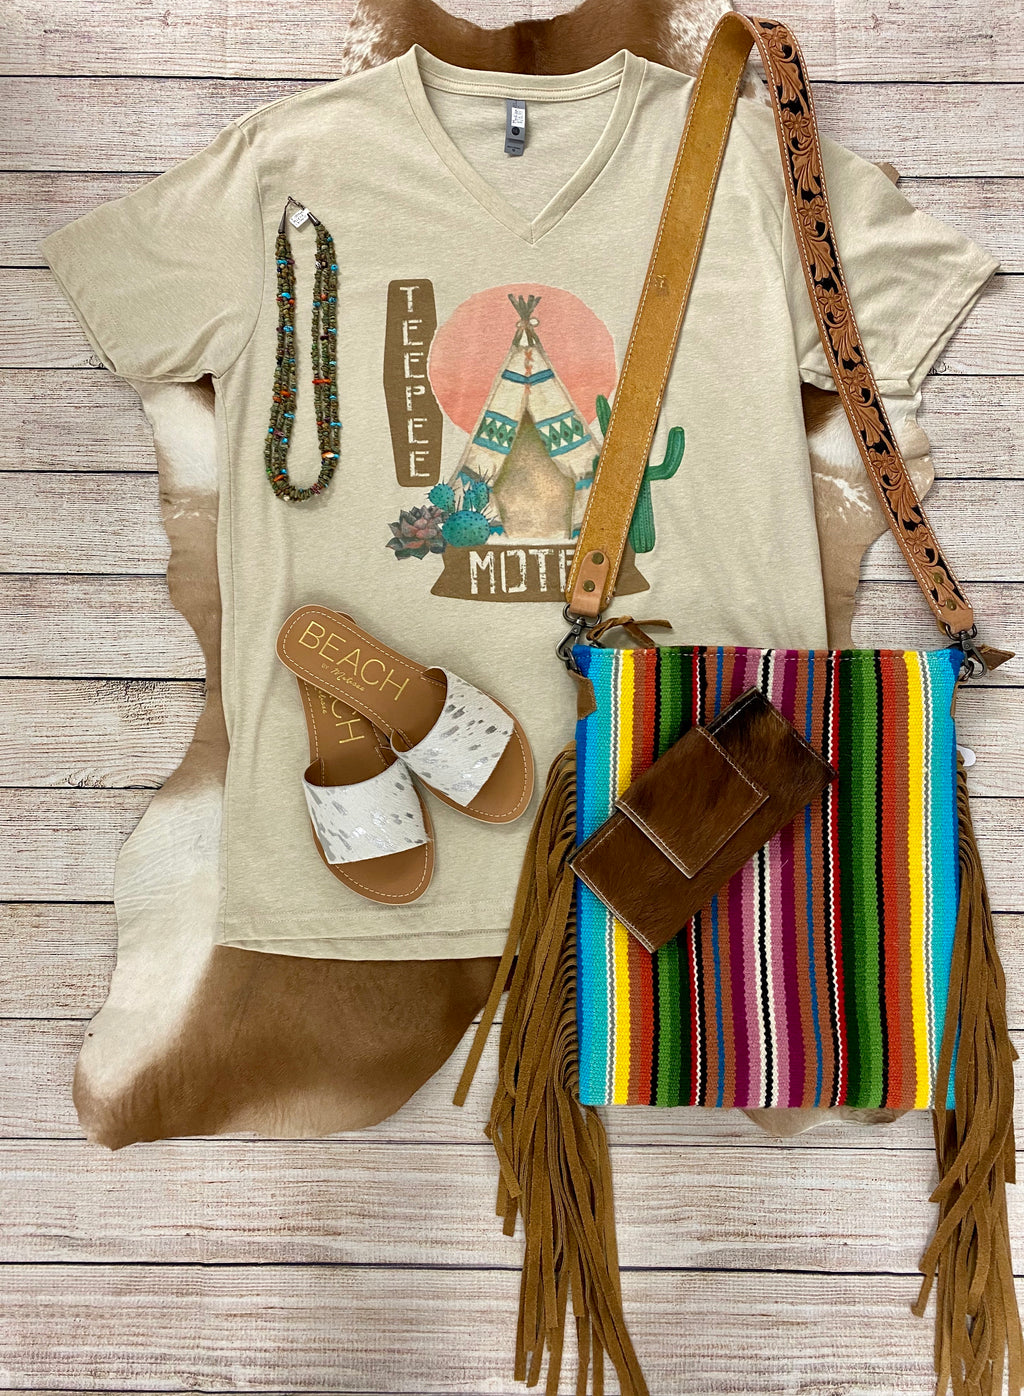 TeePee Motel Tee - Ny Texas Style Boutique